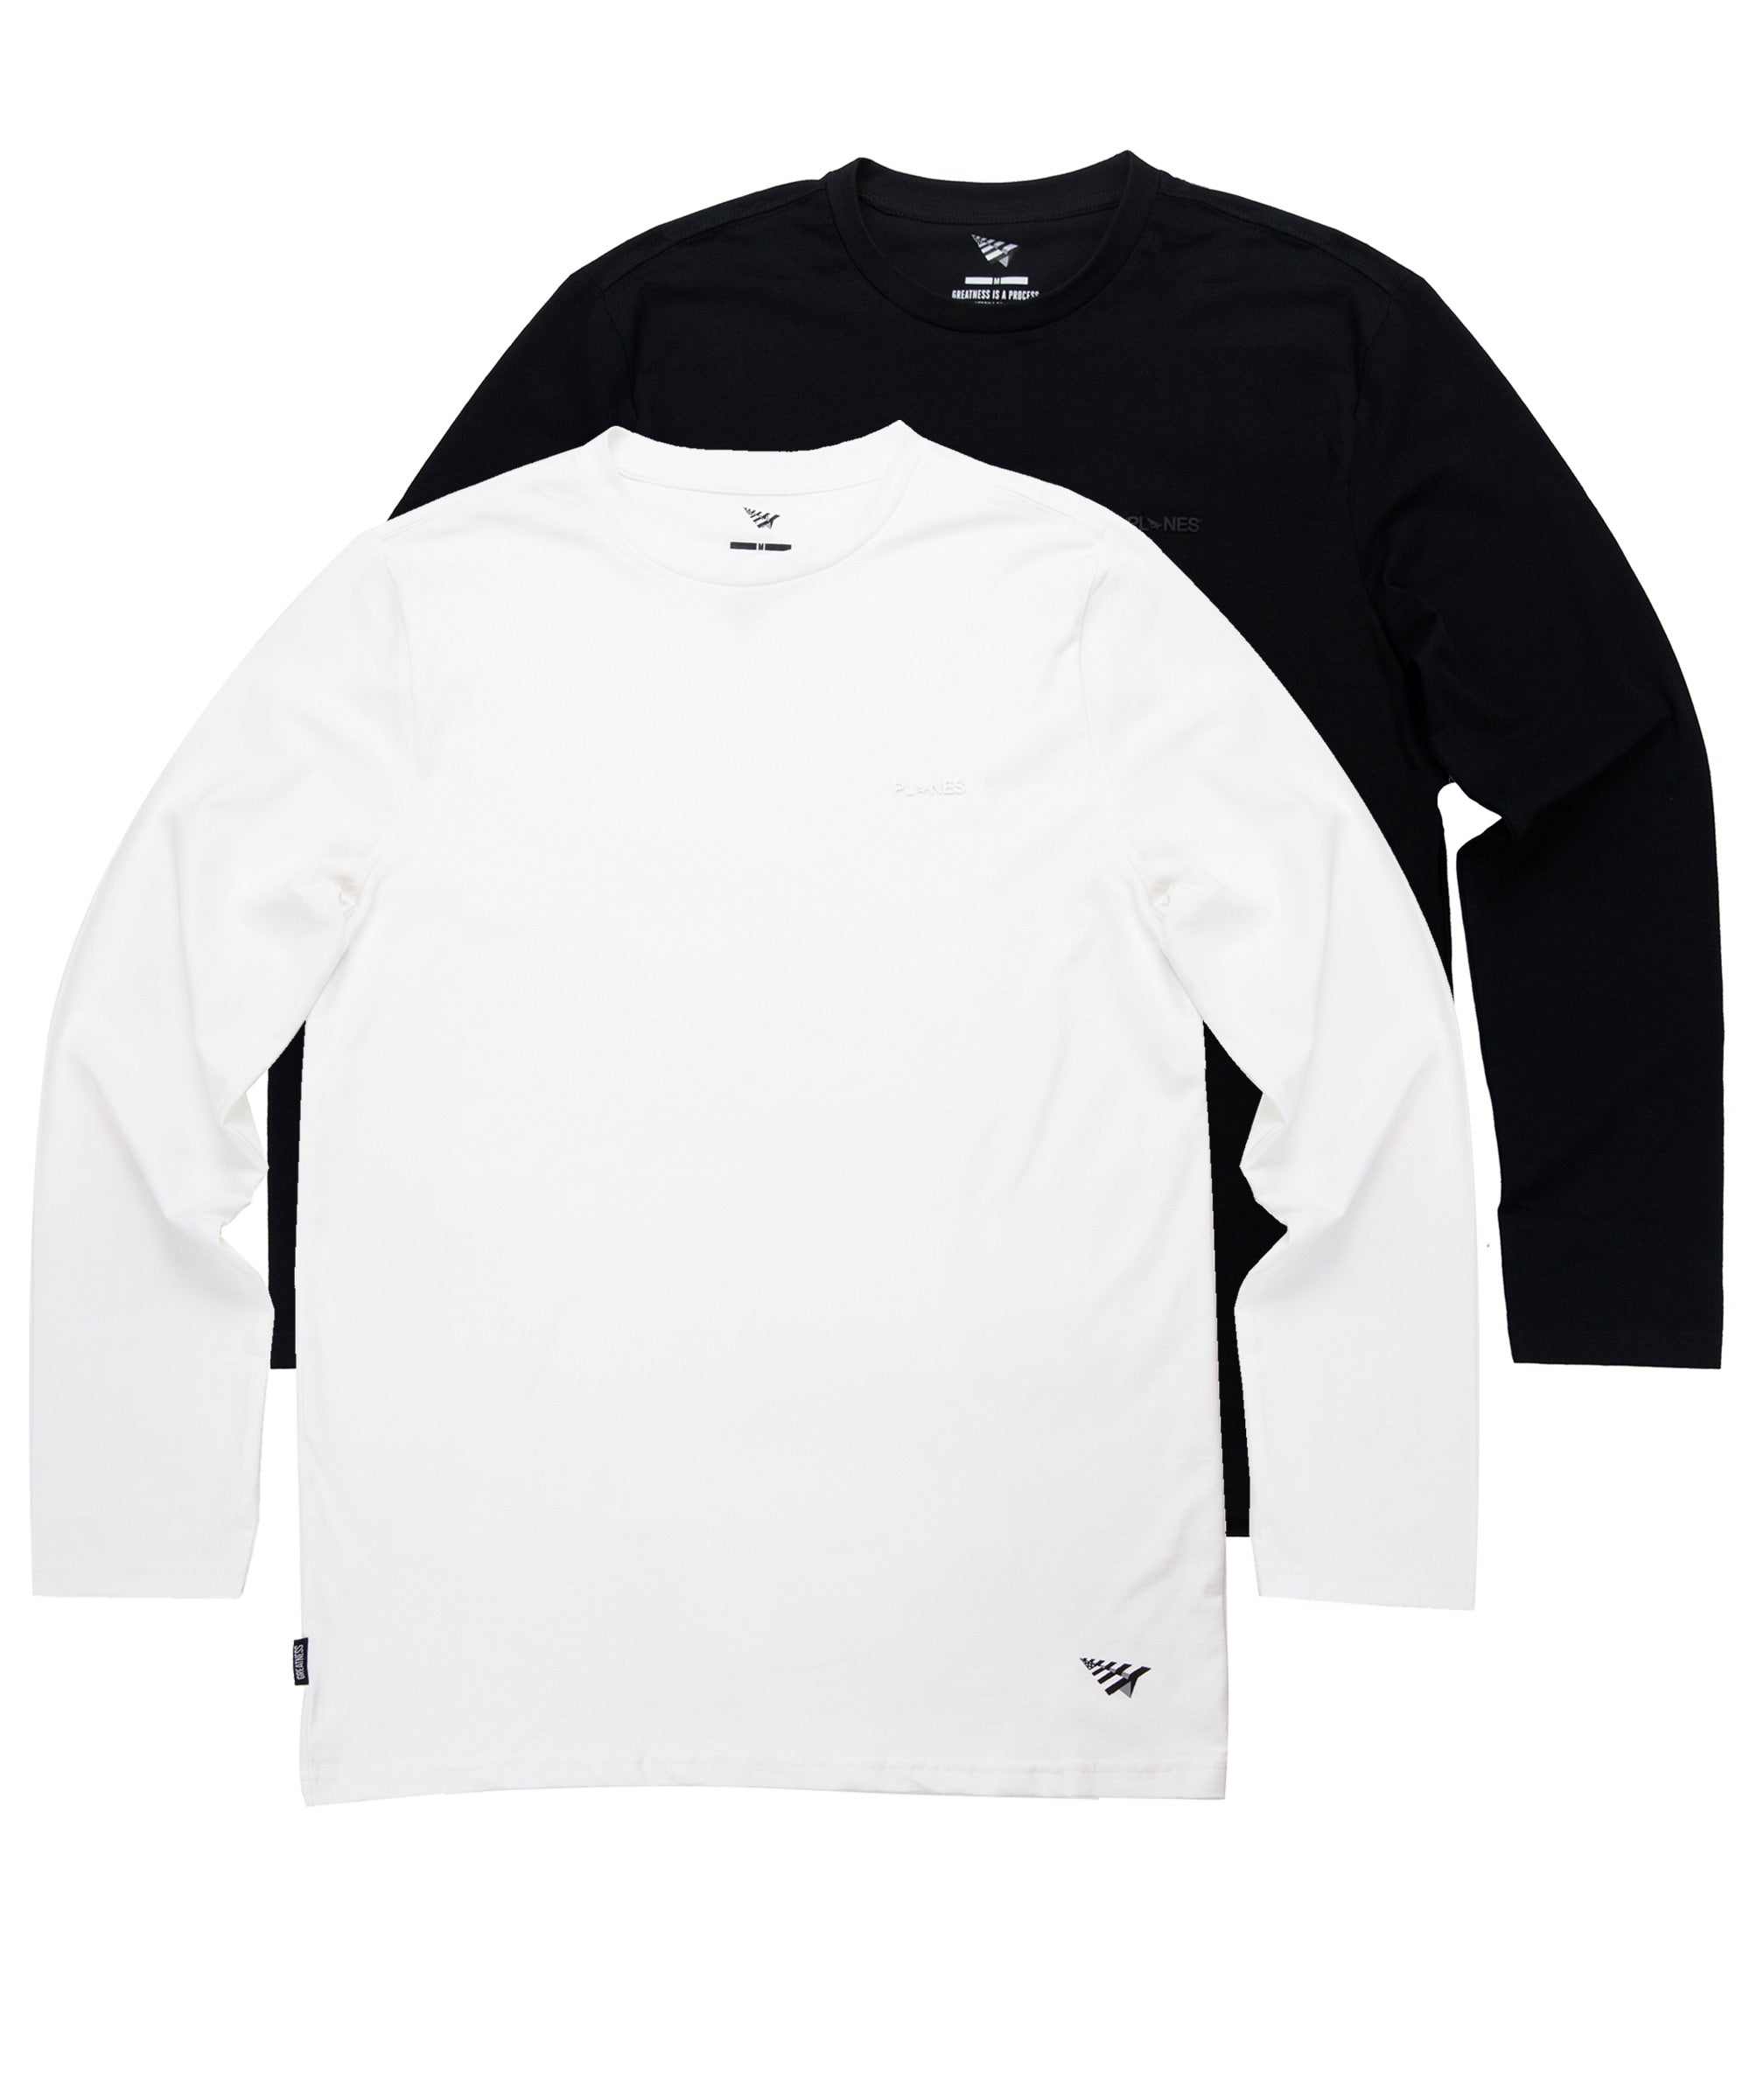 Essential 2 Pack Long Sleeve Tees